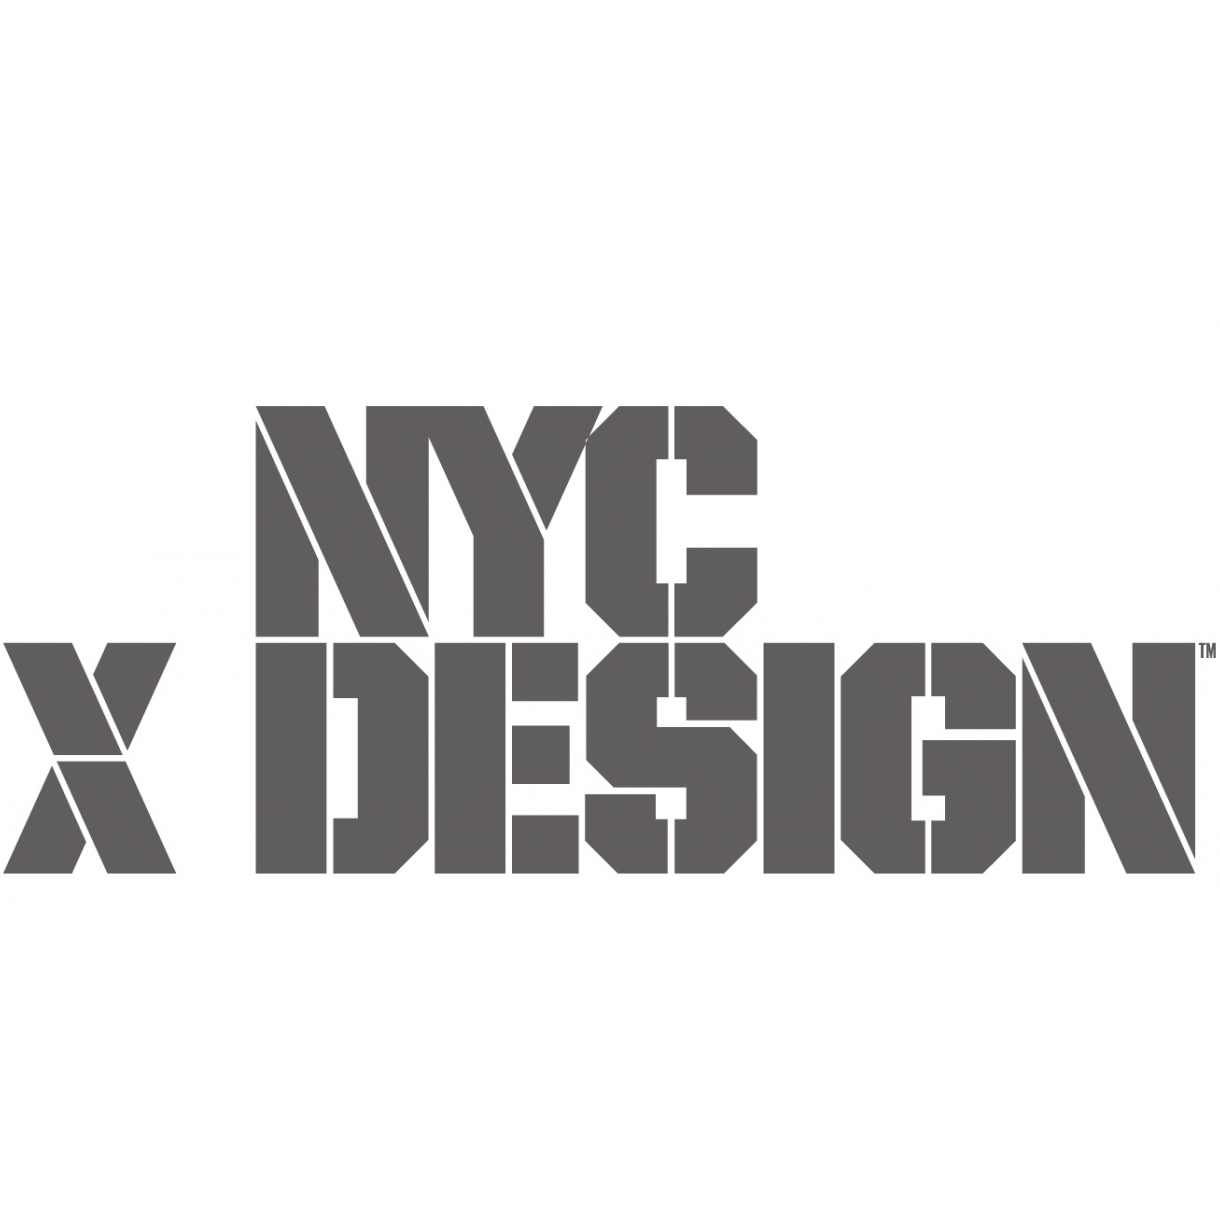 NYCXDESIGN_Logos-2018-WHITE-square copy.jpg